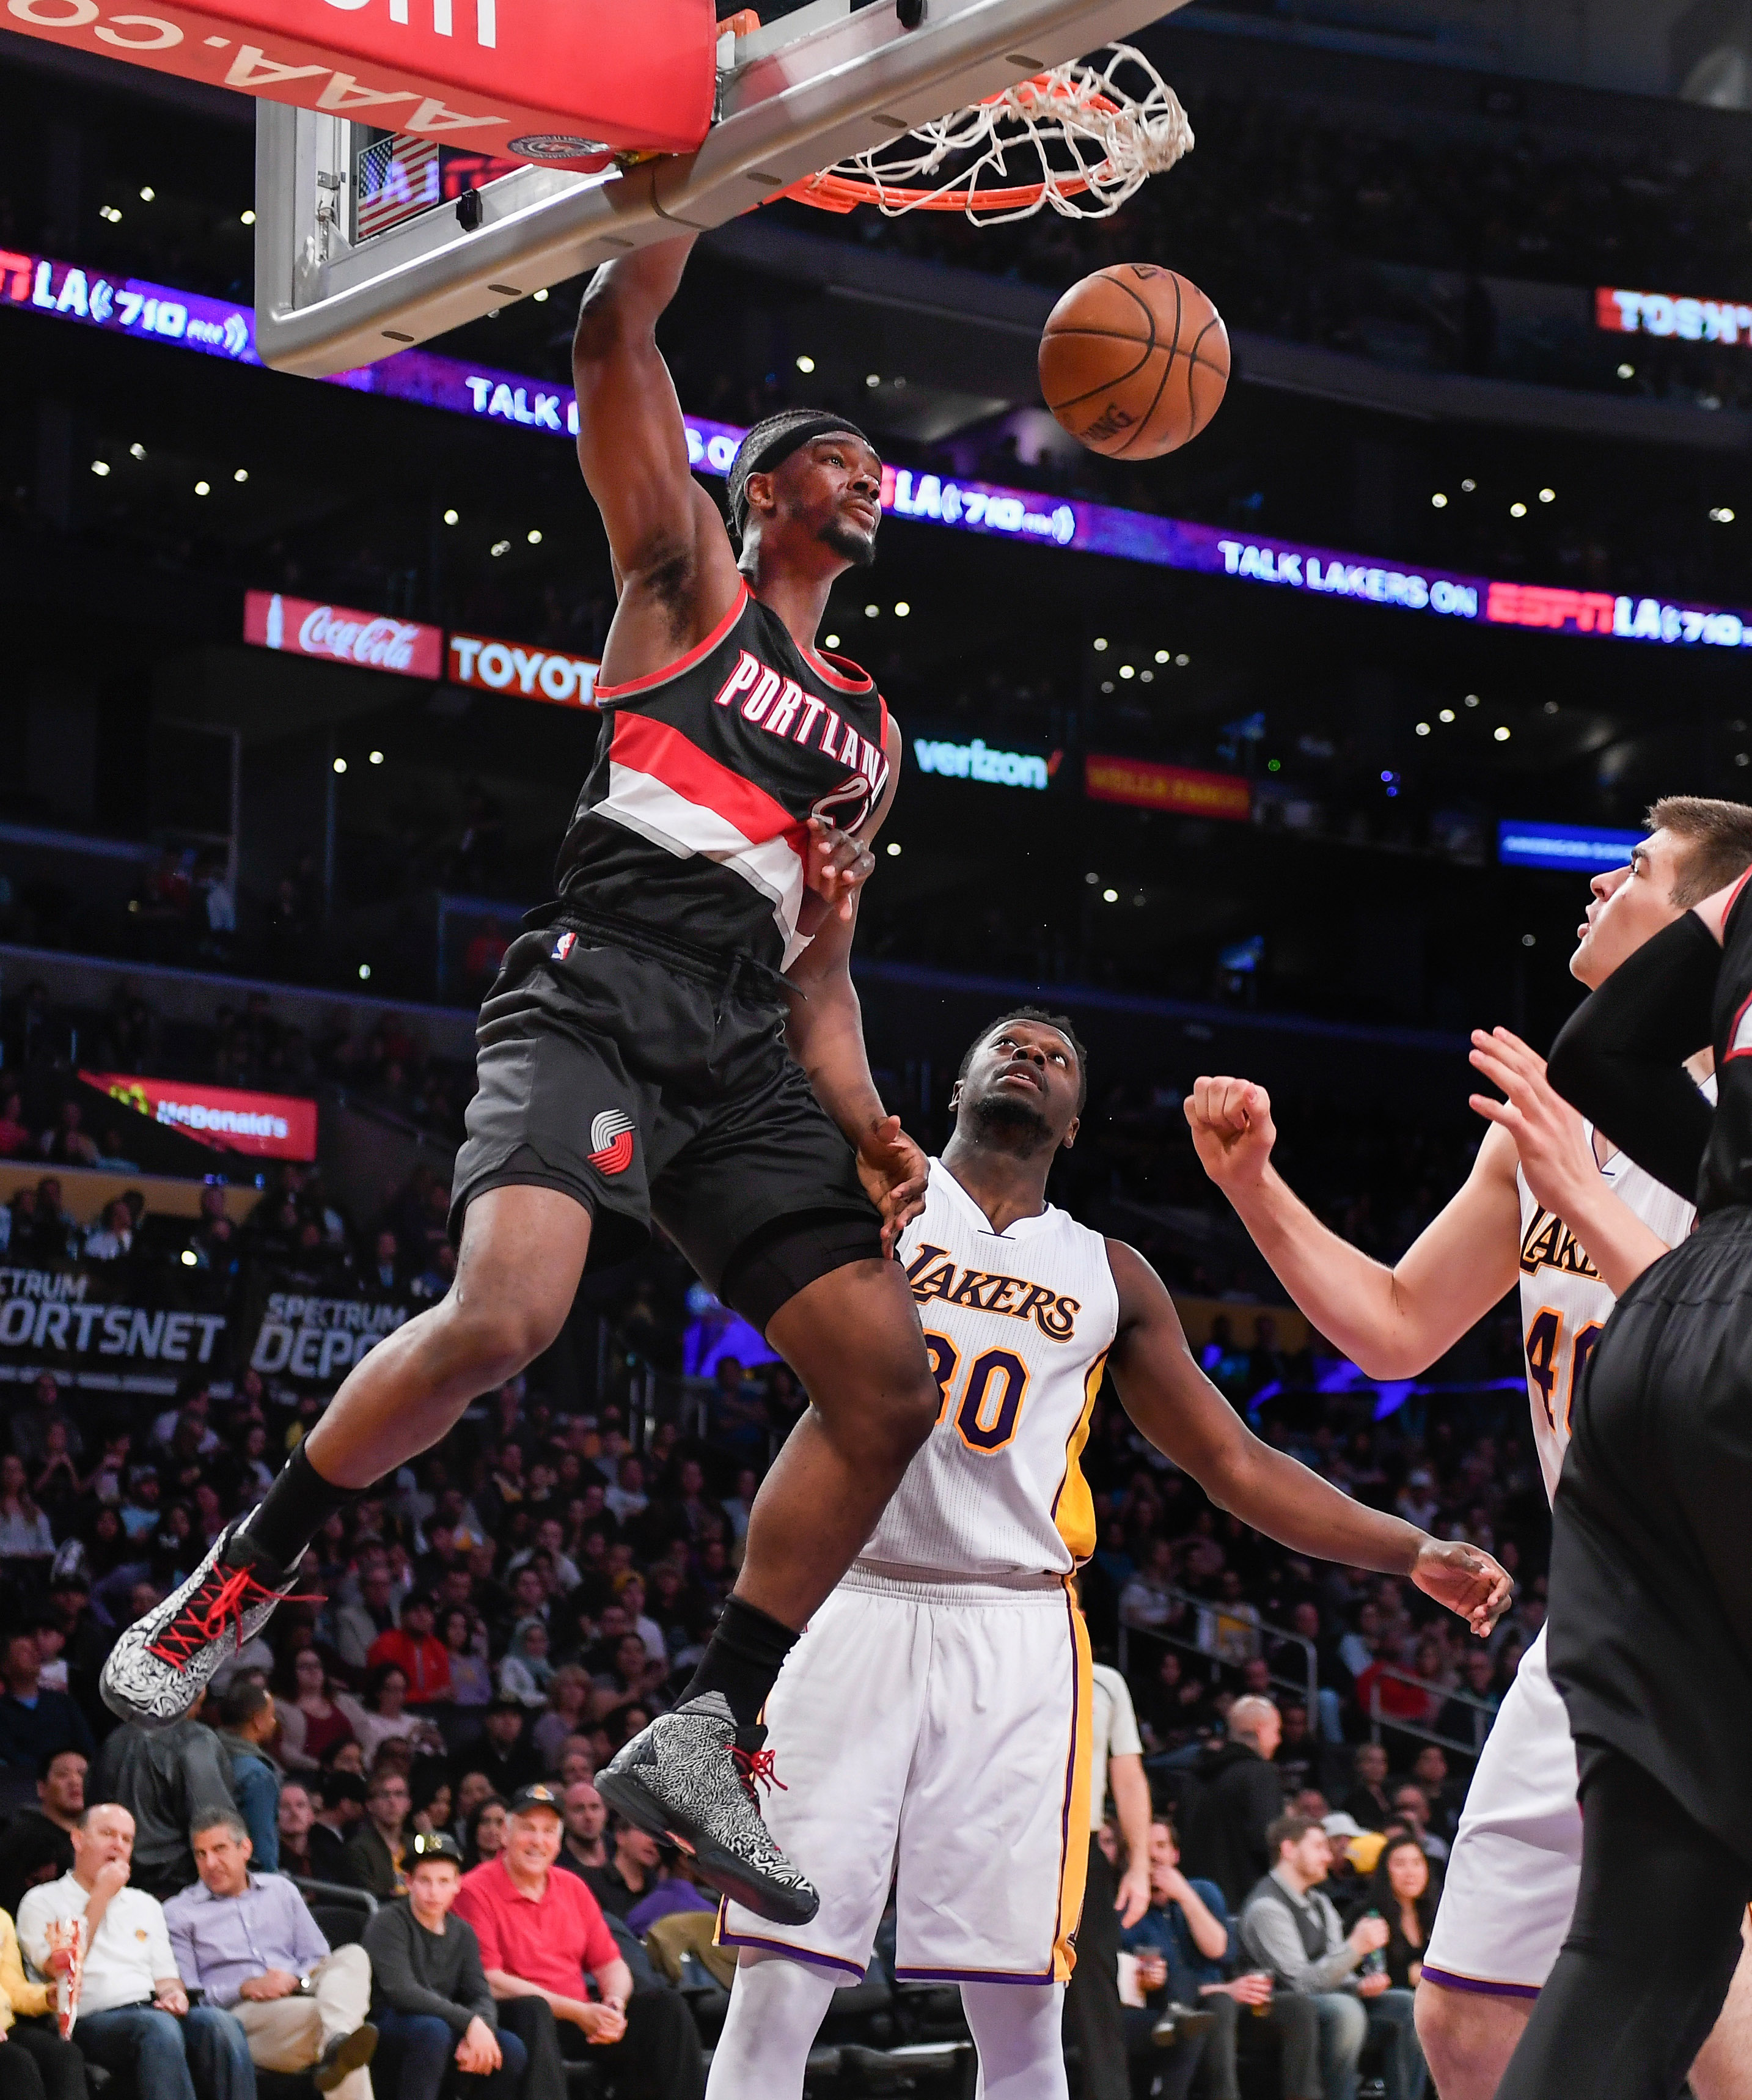 Portland Trail Blazers Espn Nba: Blazers Overtake 8th Spot With Dominant Win Against The Lakers